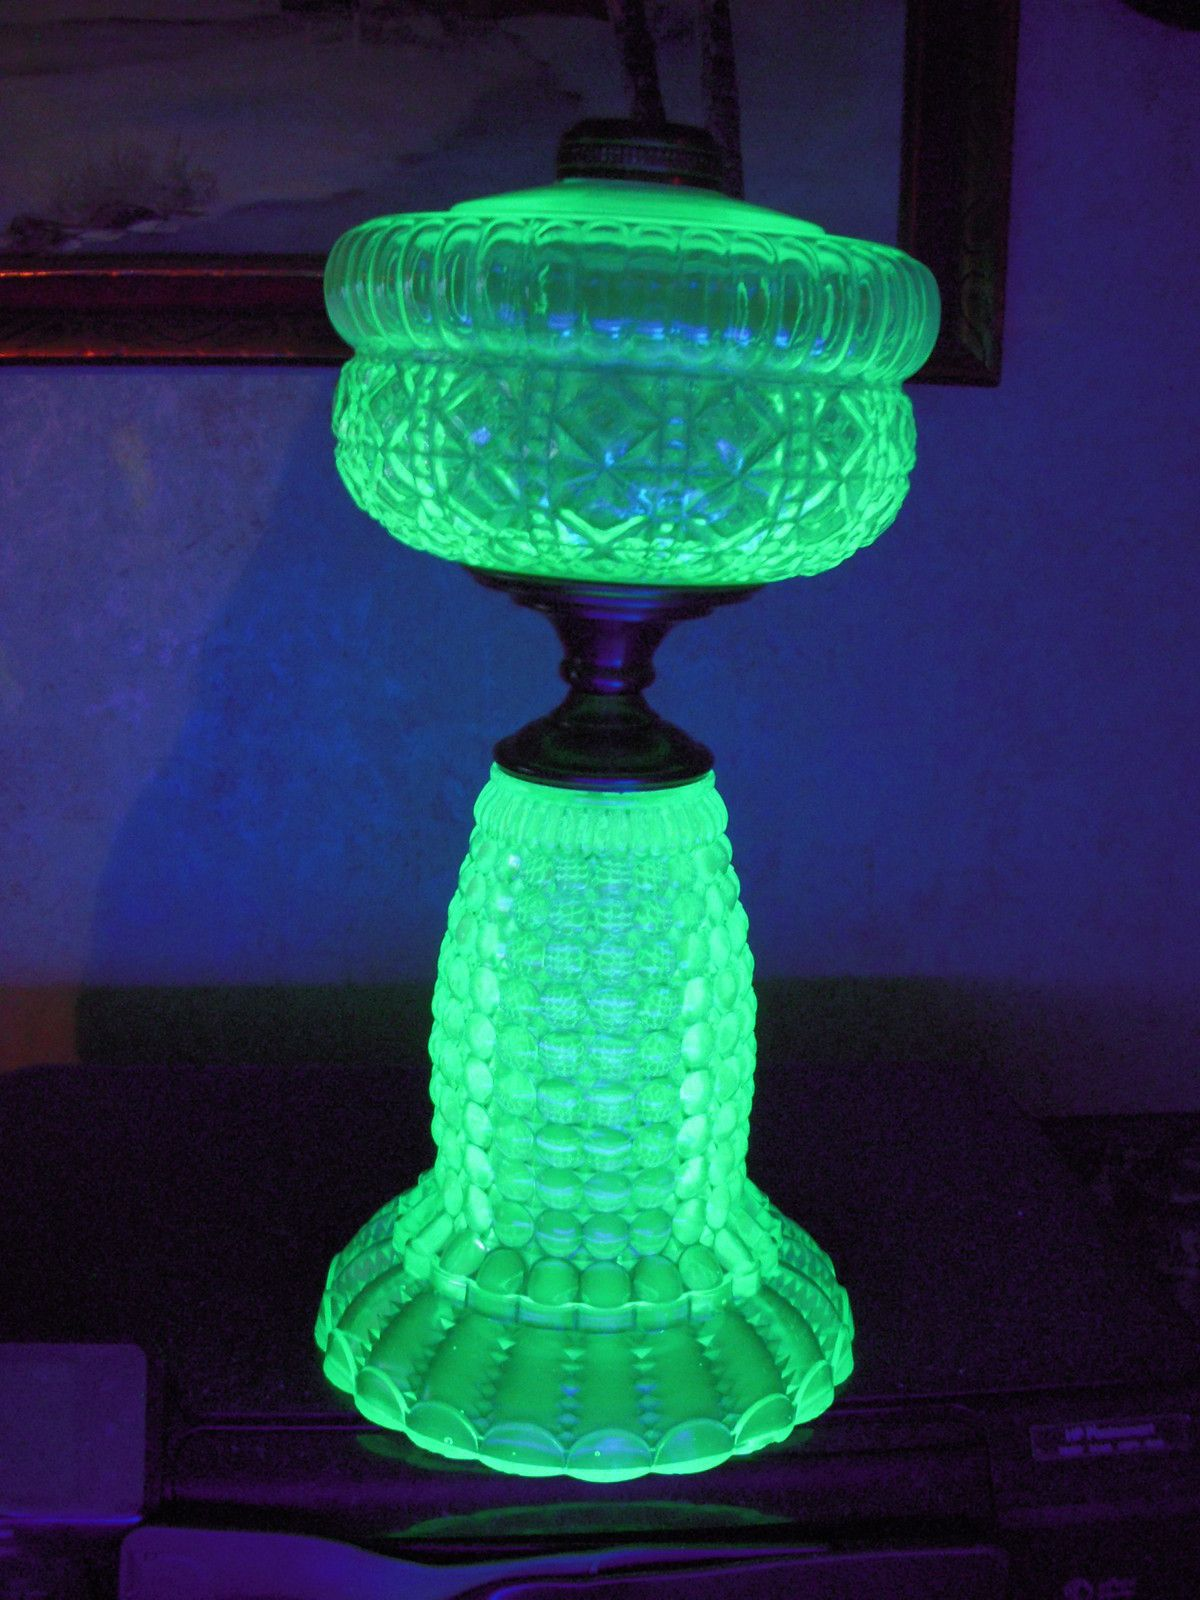 Hugh 1890s antique thousand eye variant apple green vaseline glass oil lamp